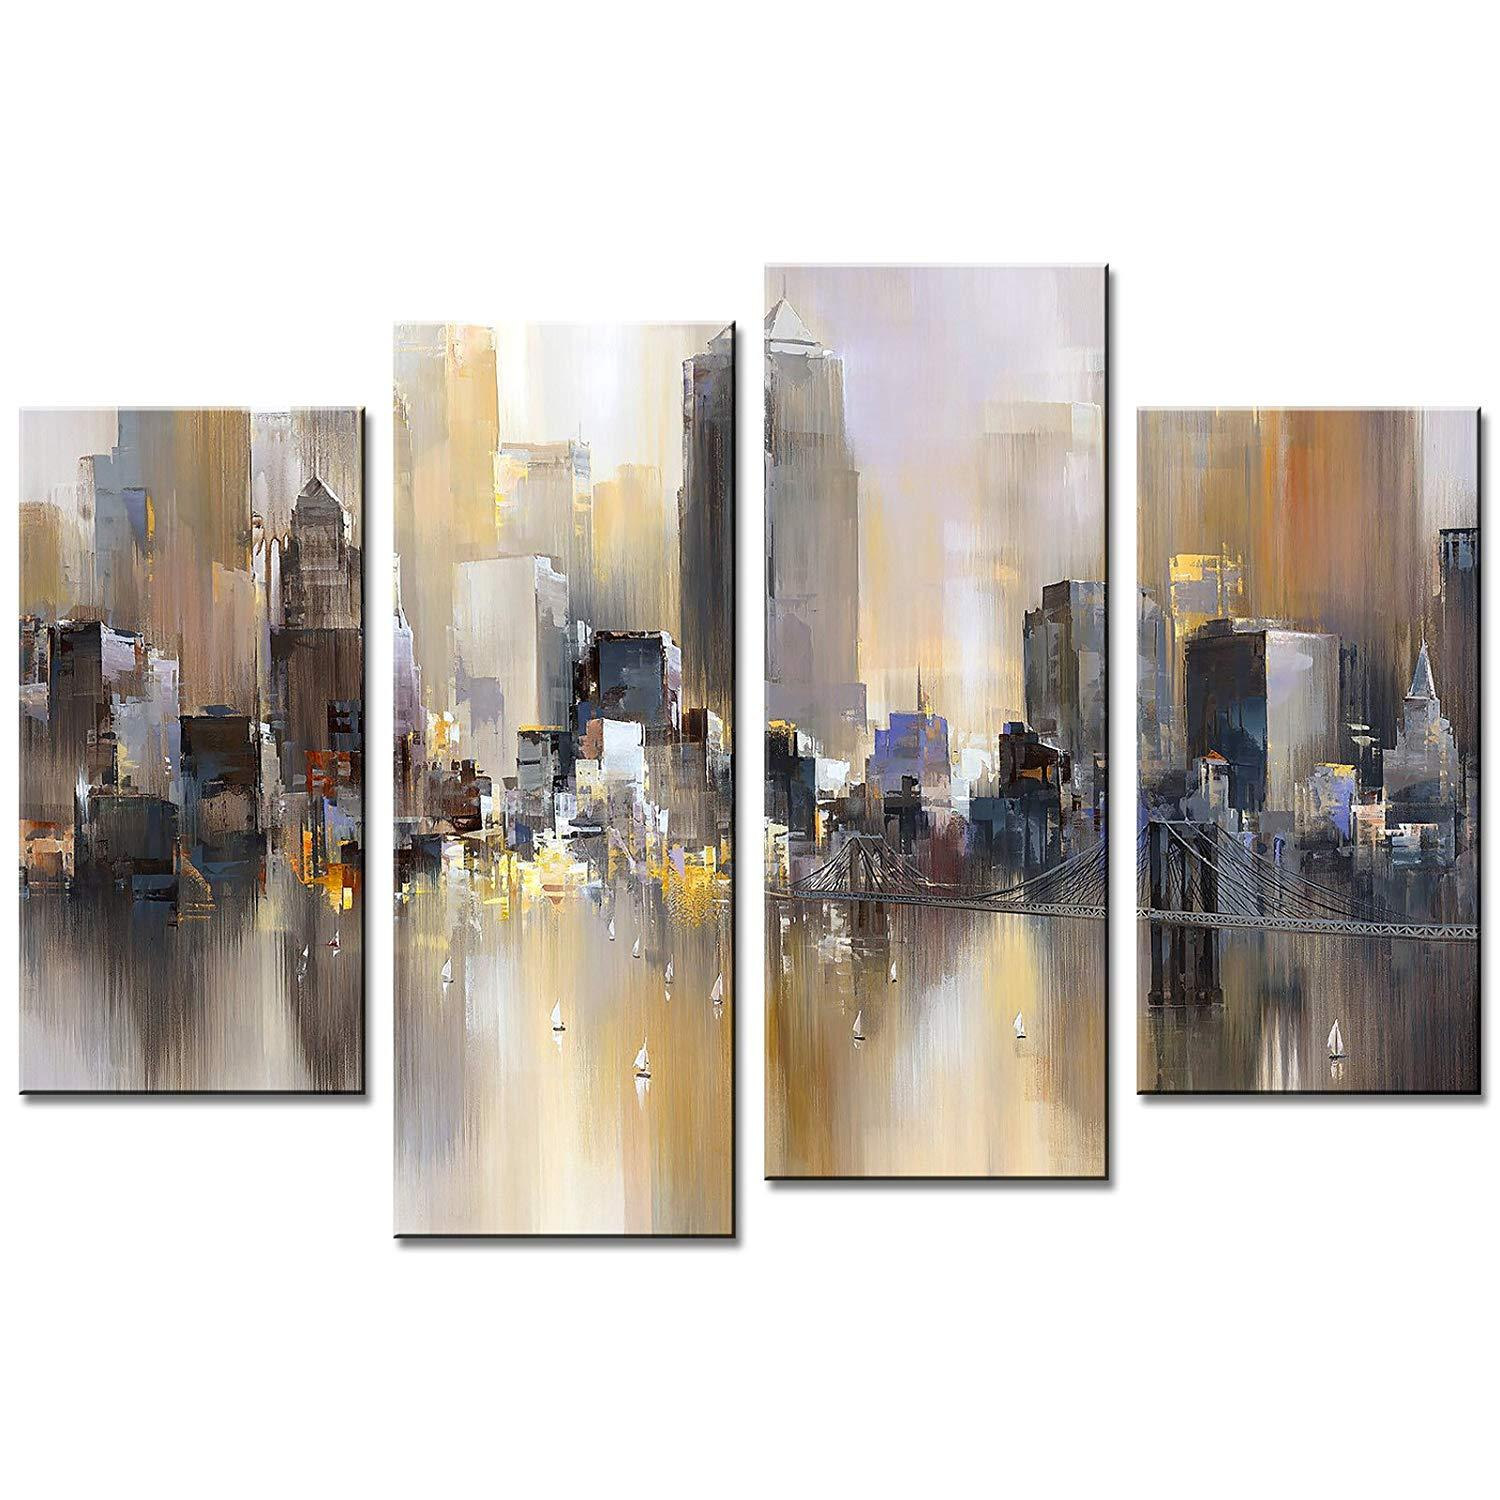 4 Pieces Abstract Canvas Pintura Nova Iorque Paisagem colorida City Foto Prints giclée arte esticada Framed Wall Art Decor Home presente